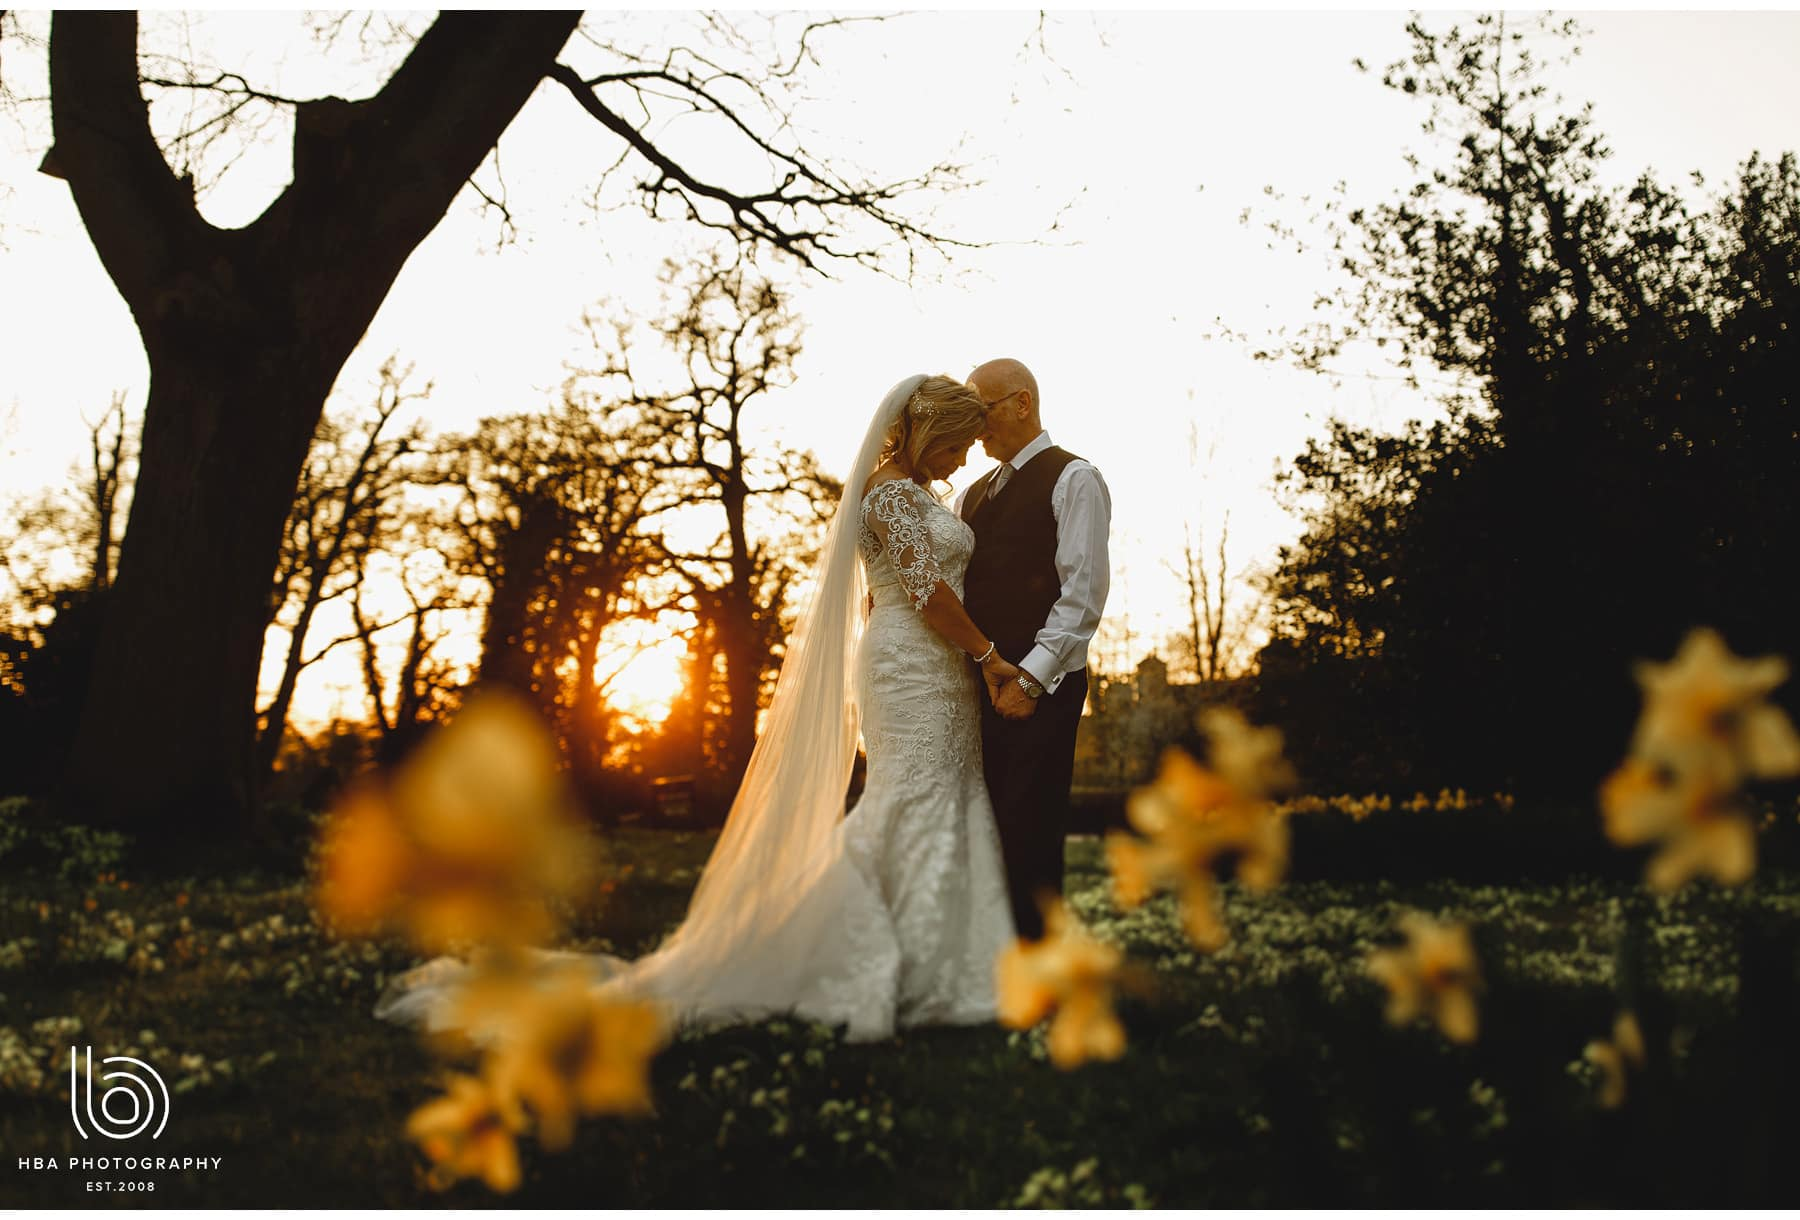 the bride & groom in the daffs in golden hour